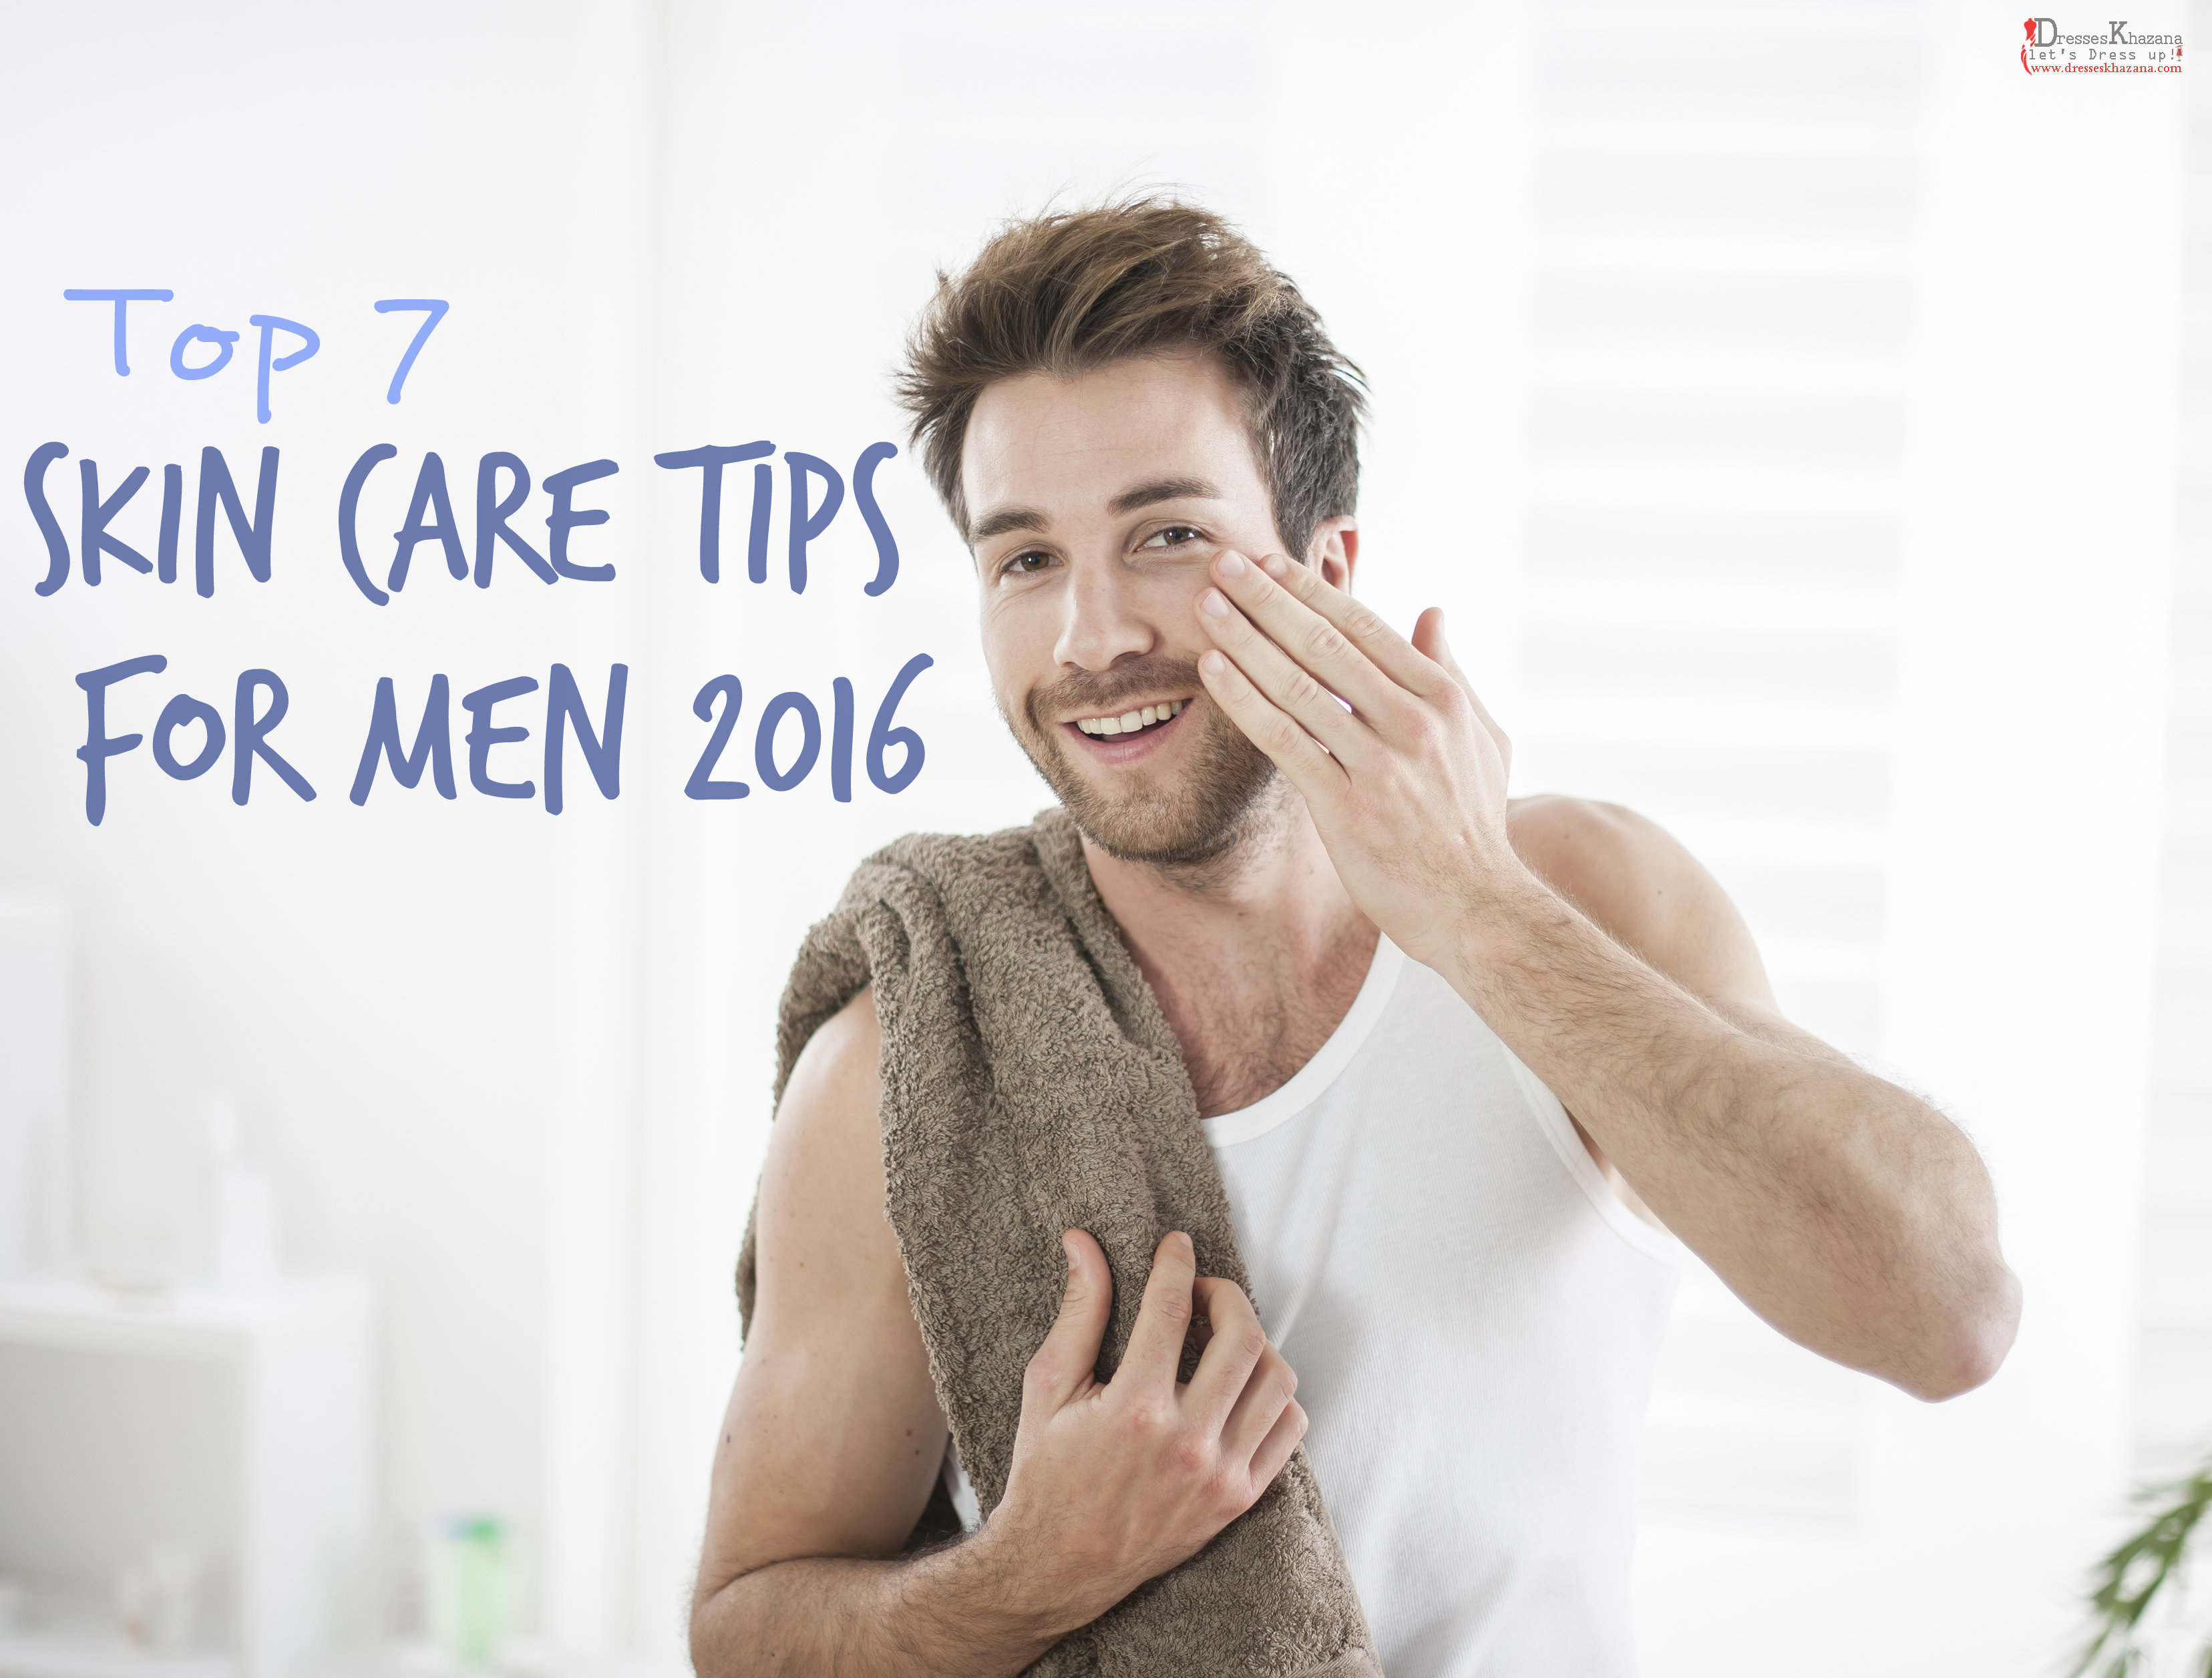 Skin-Care-Tips-for-Men-2016.jpg